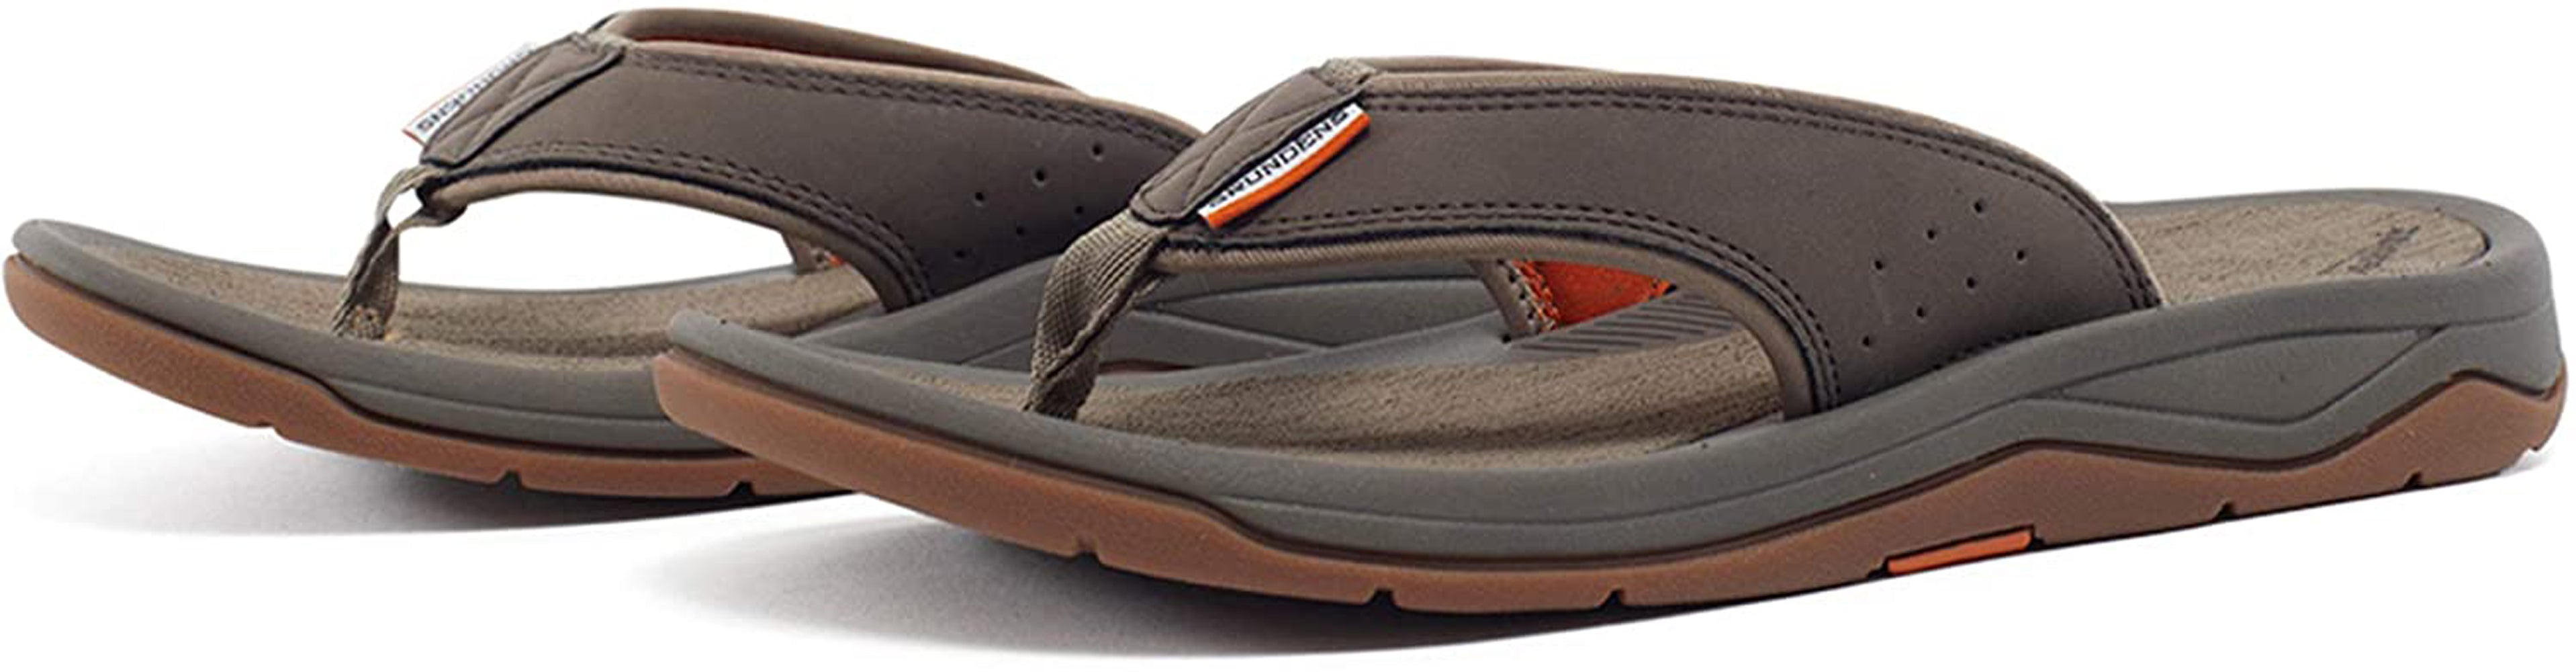 Deck-Boss Sandal in Brindle color from the side view